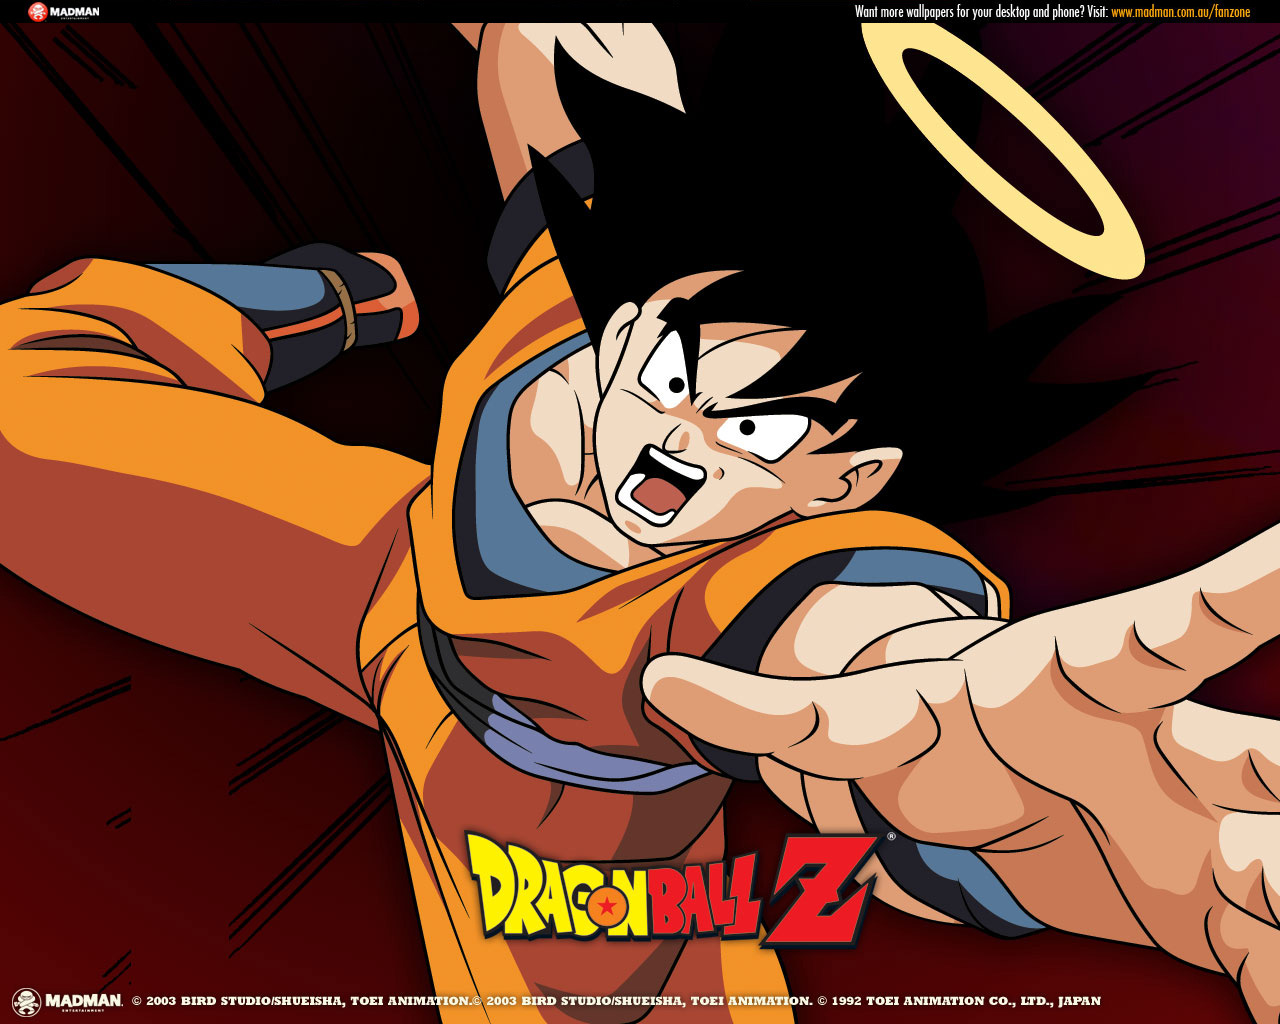 About that anime life are you about that life - Dragon ball z 187 vf ...